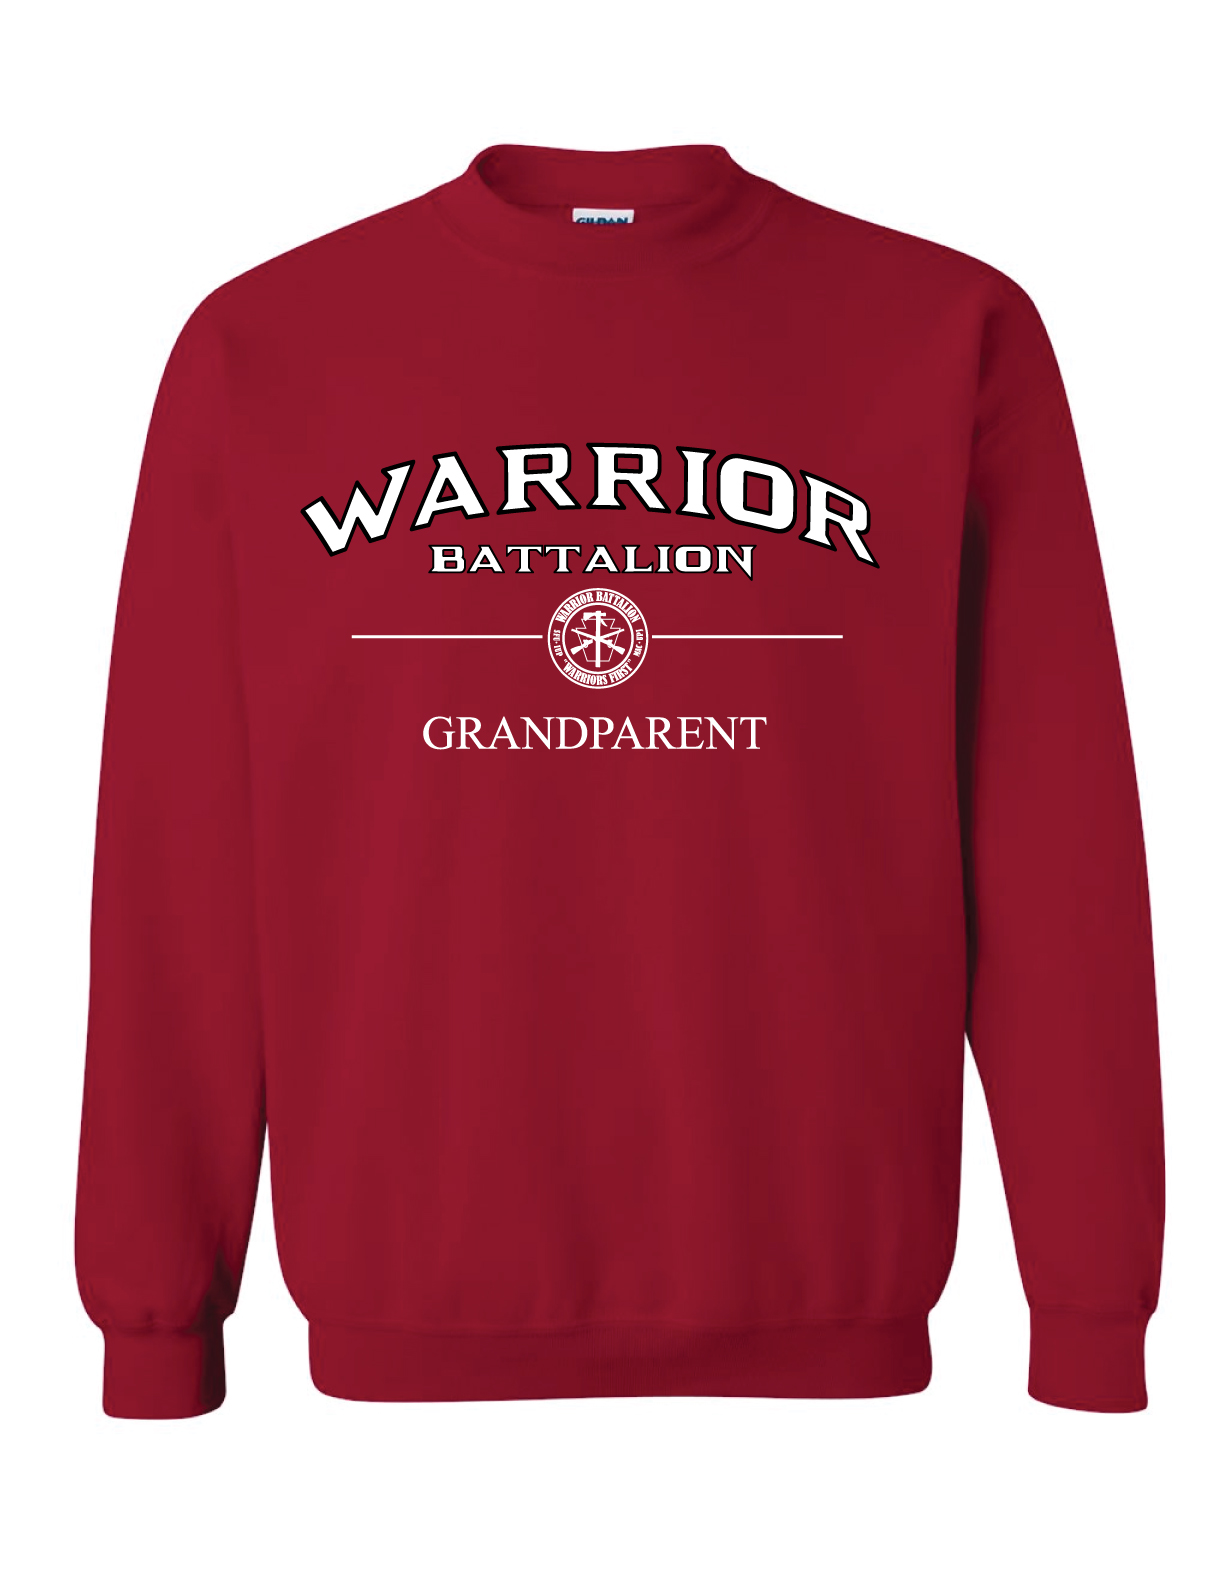 ***Clearance Sale*** Crewneck, Cardinal Red (Grandparent)